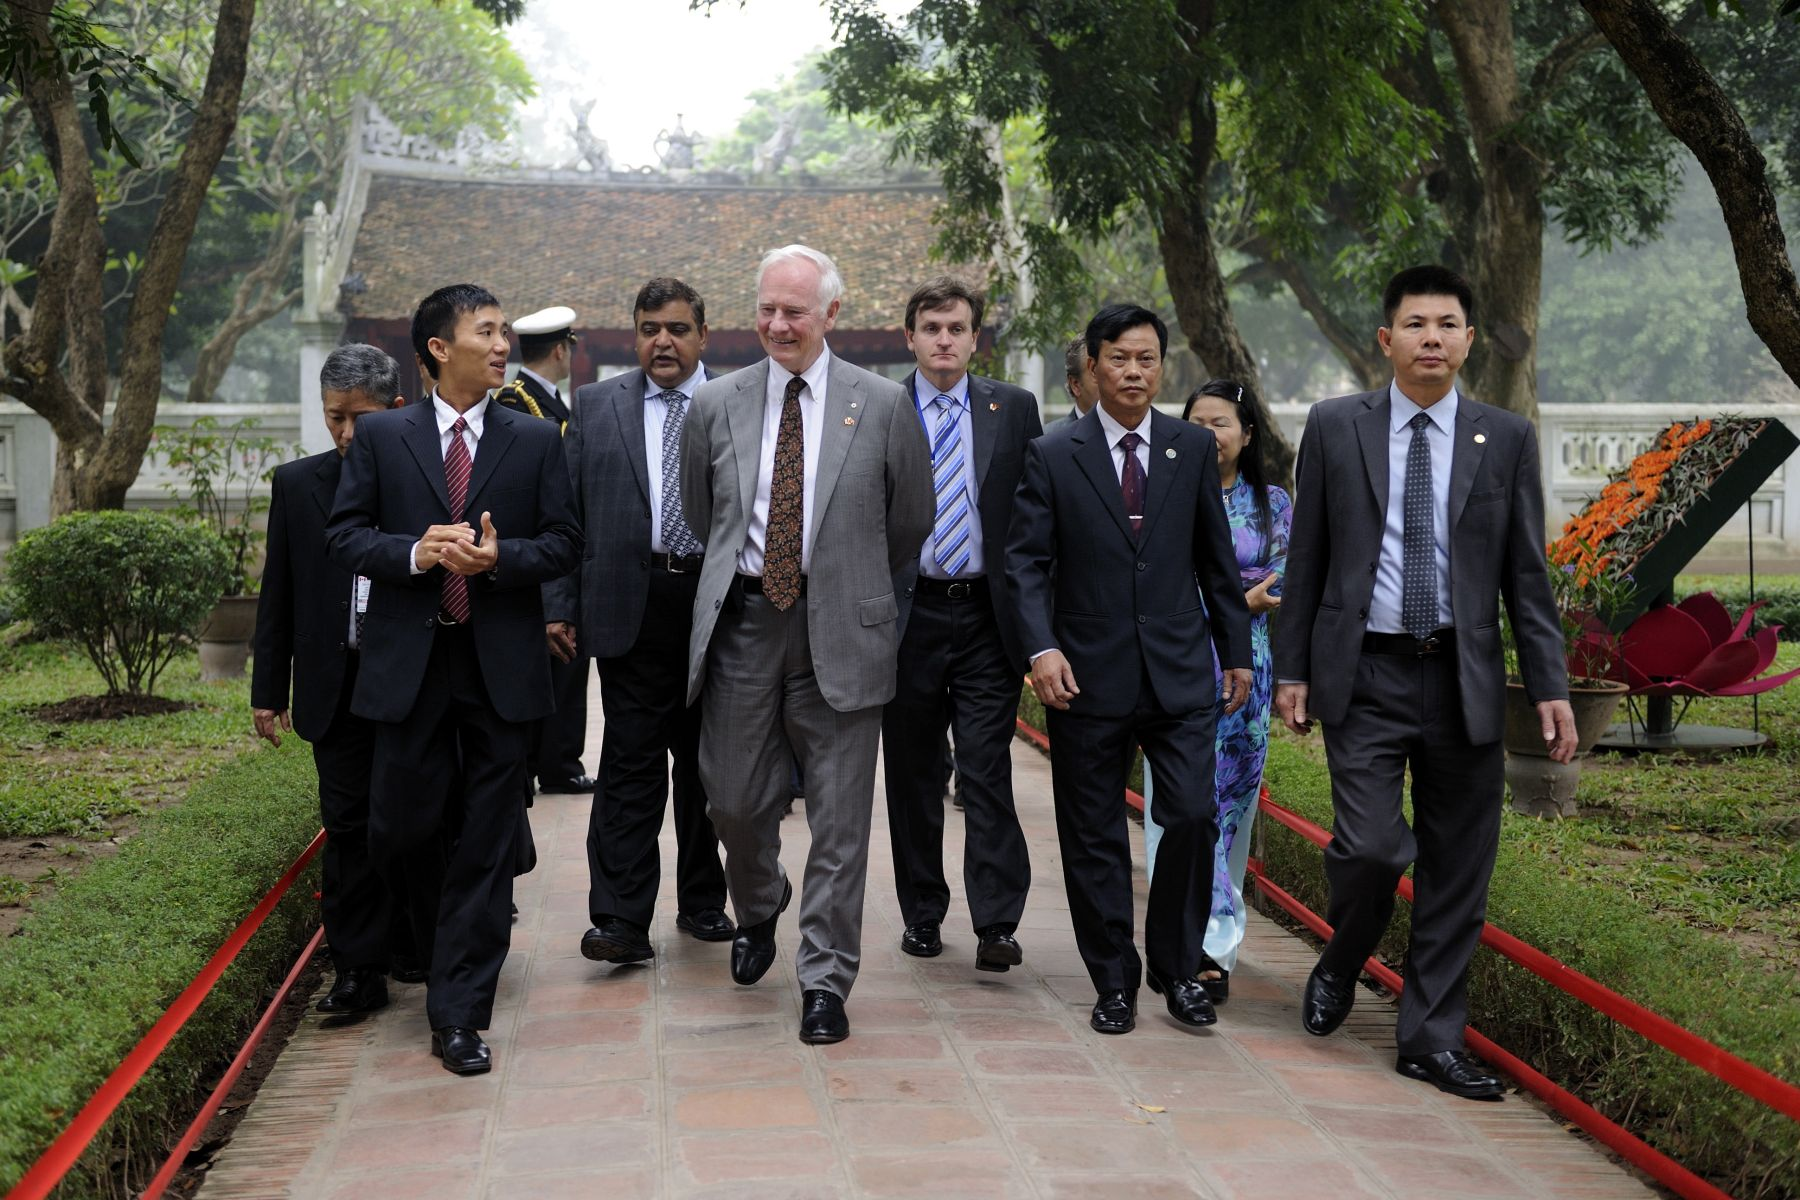 His Excellency visited Hanoi's Temple of Literature, which was built in 1070 as a national academy dedicated to Confucius. It provided training to Vietnamese senior administrators for several centuries.